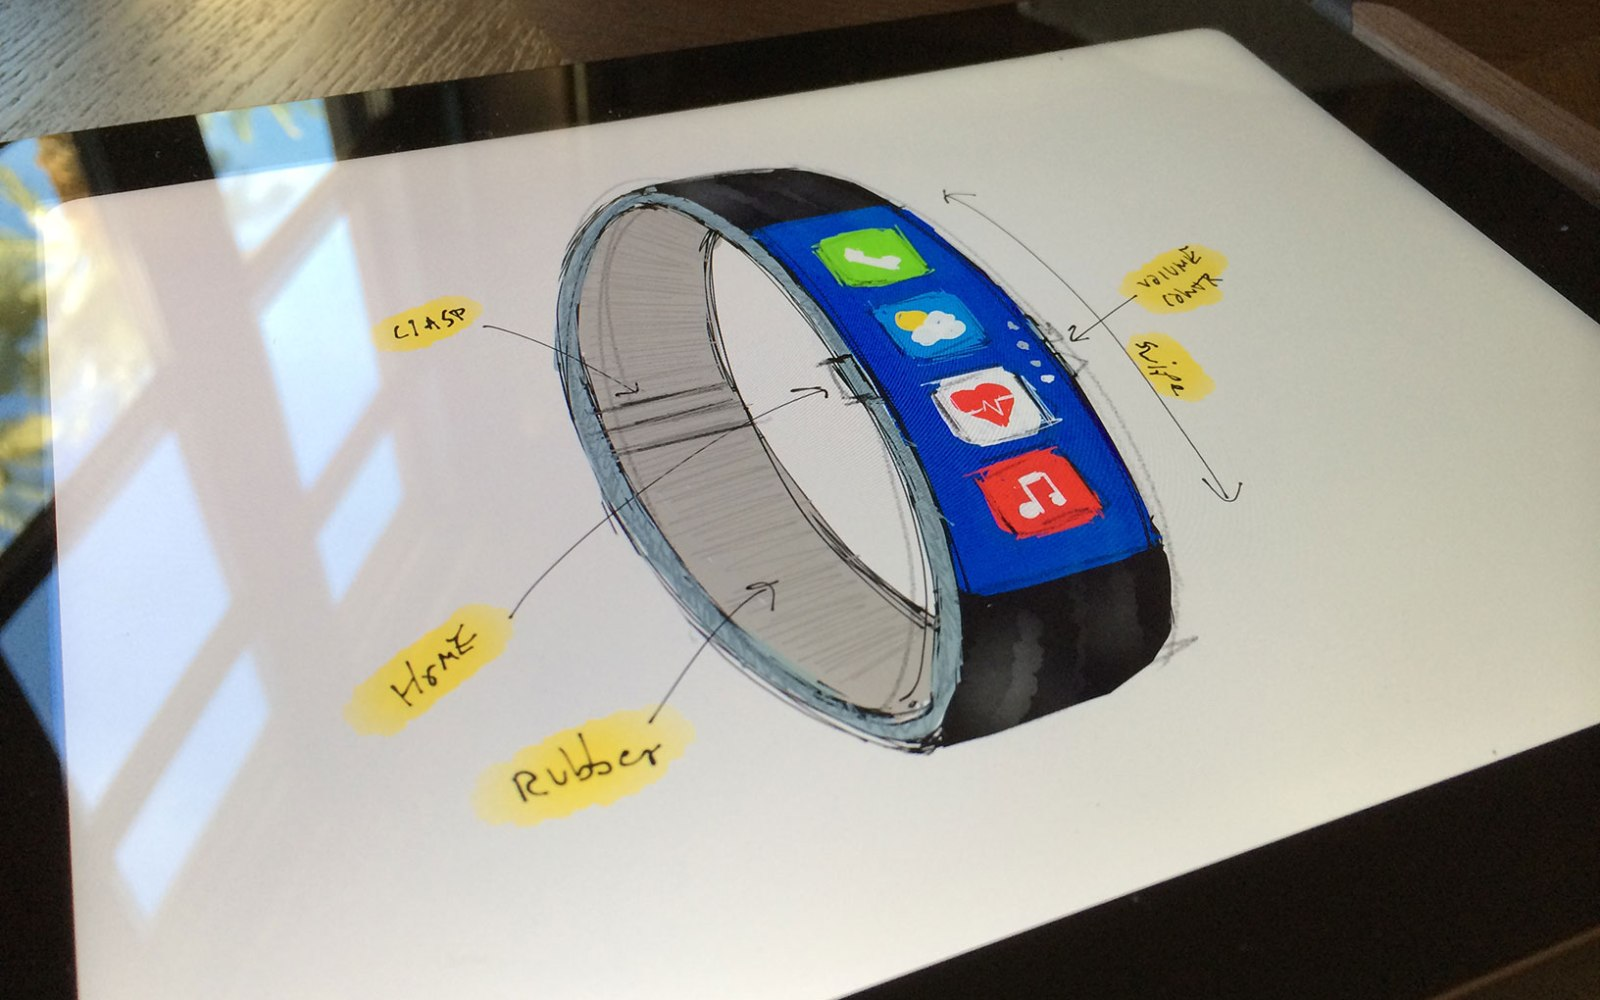 New iWatch concept iterates on Nike Fuel Band-style design